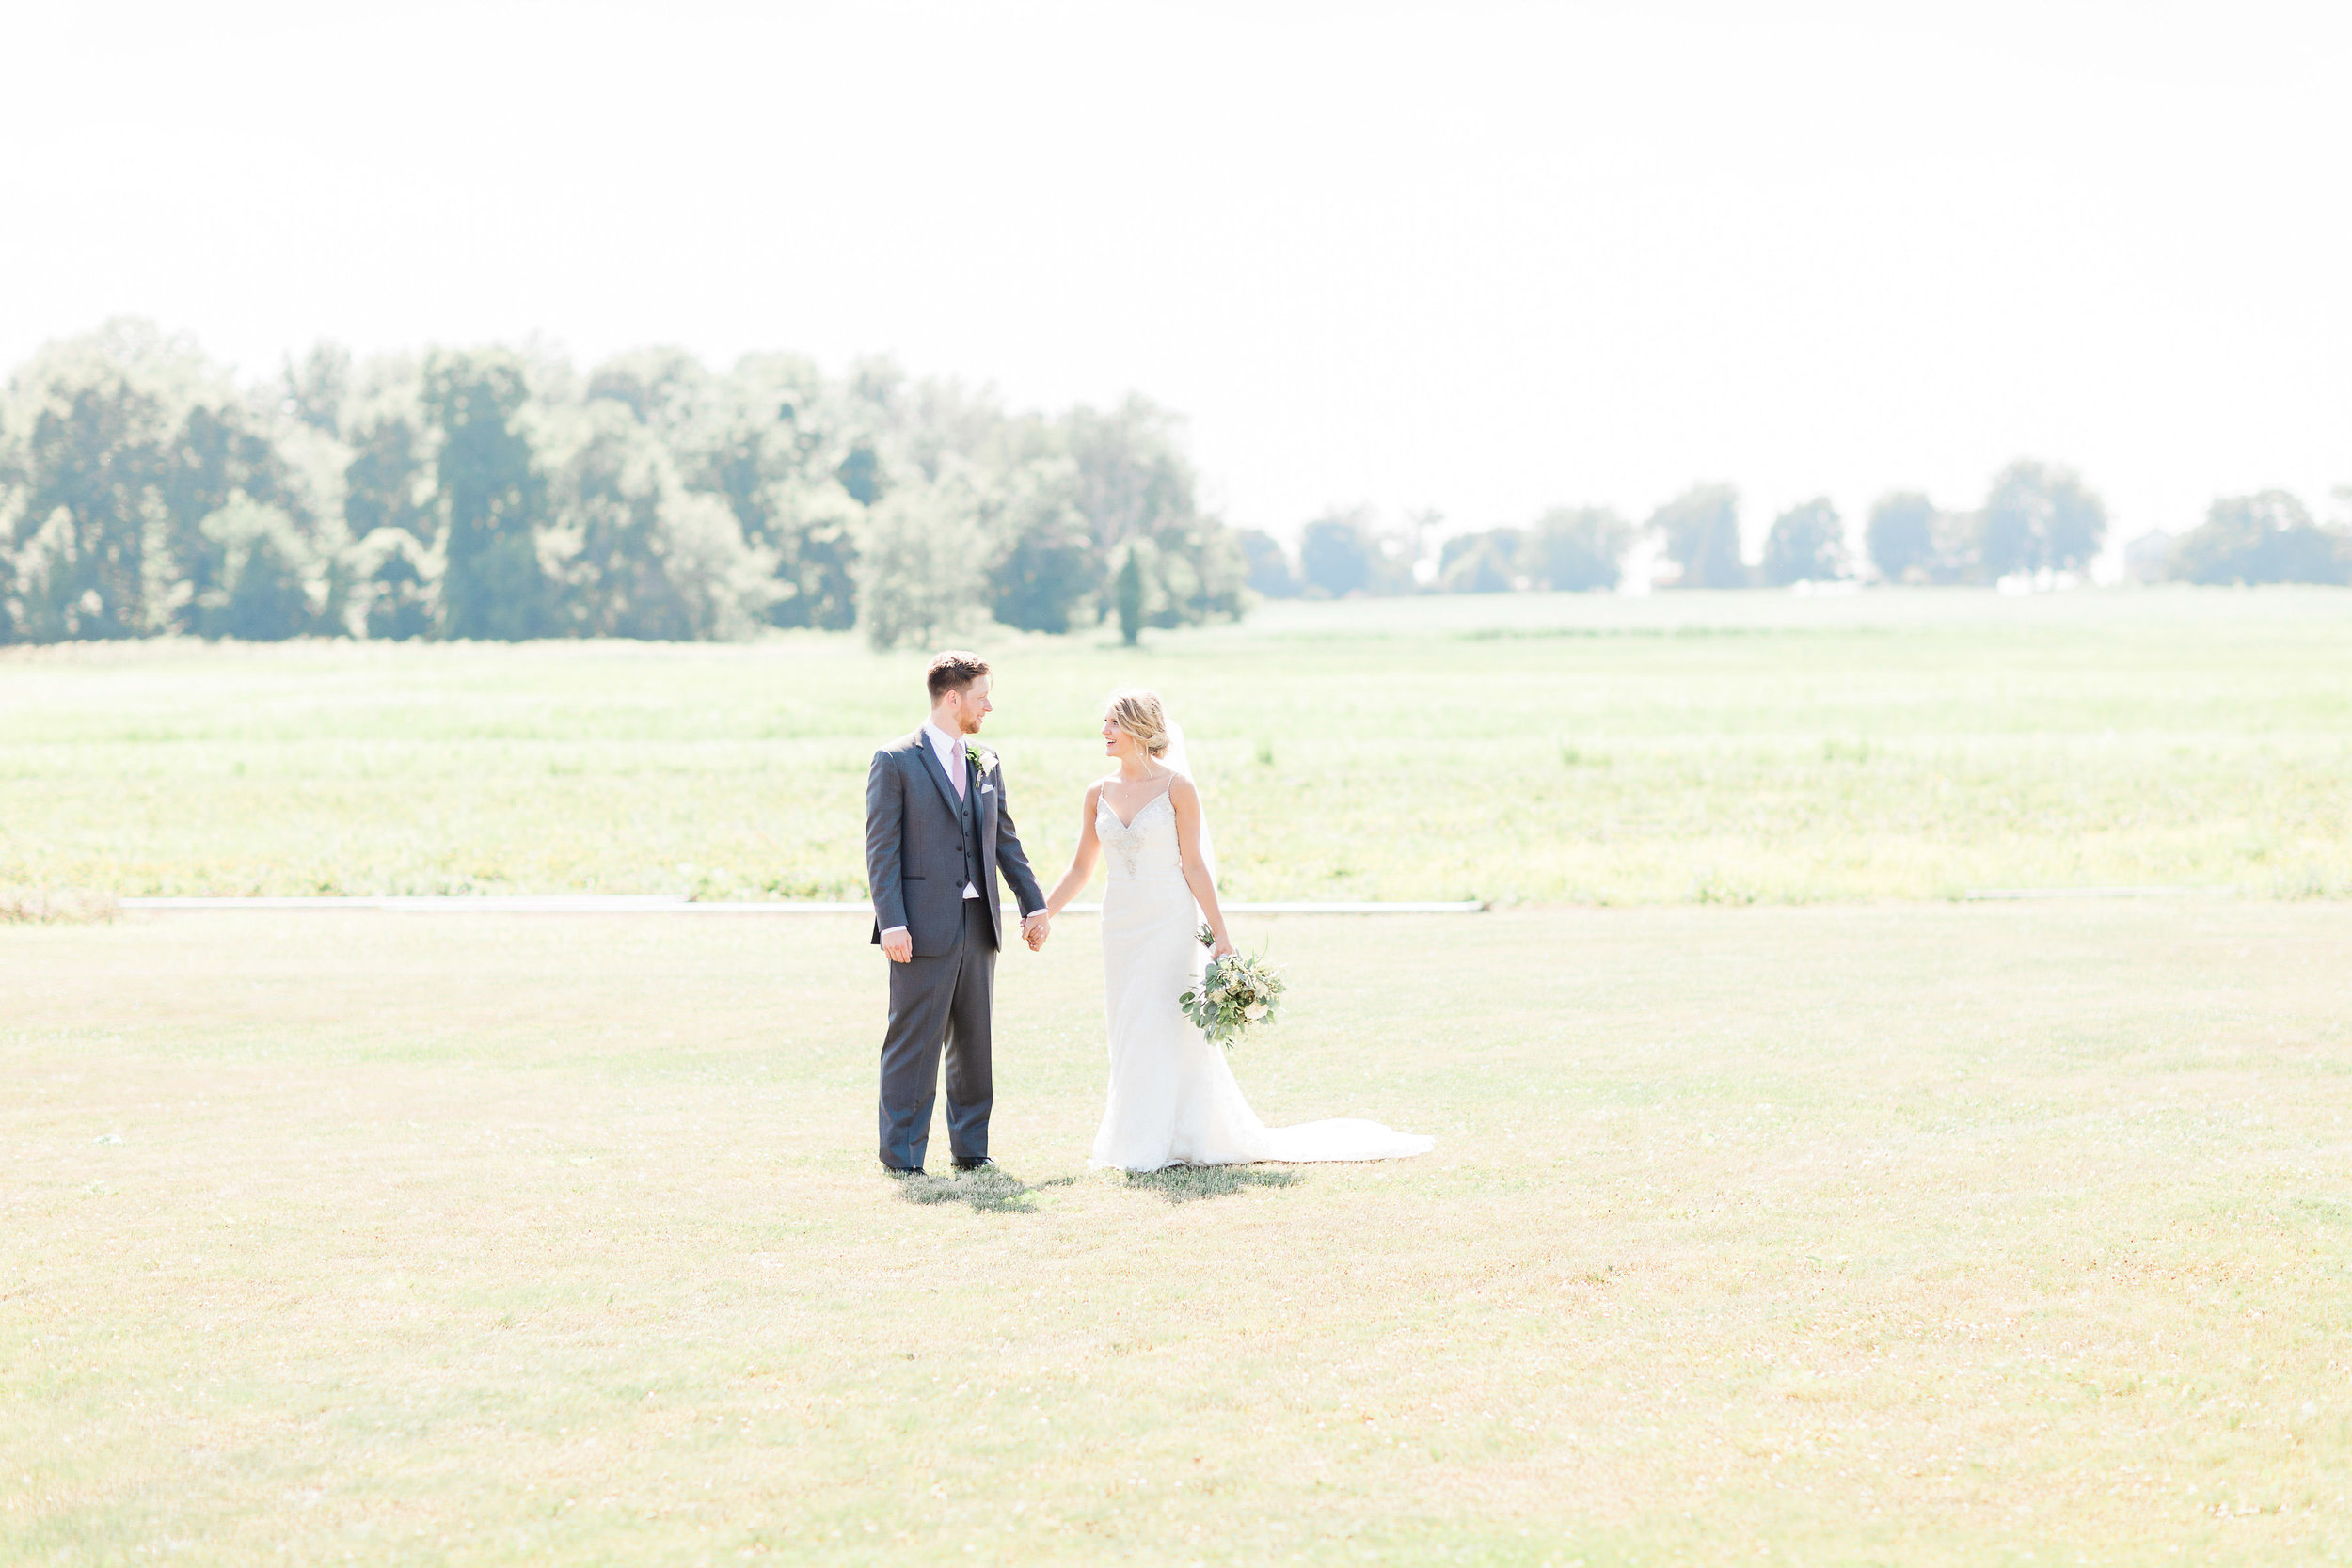 lauren day photography cincinnati wedding photographer-5.jpg